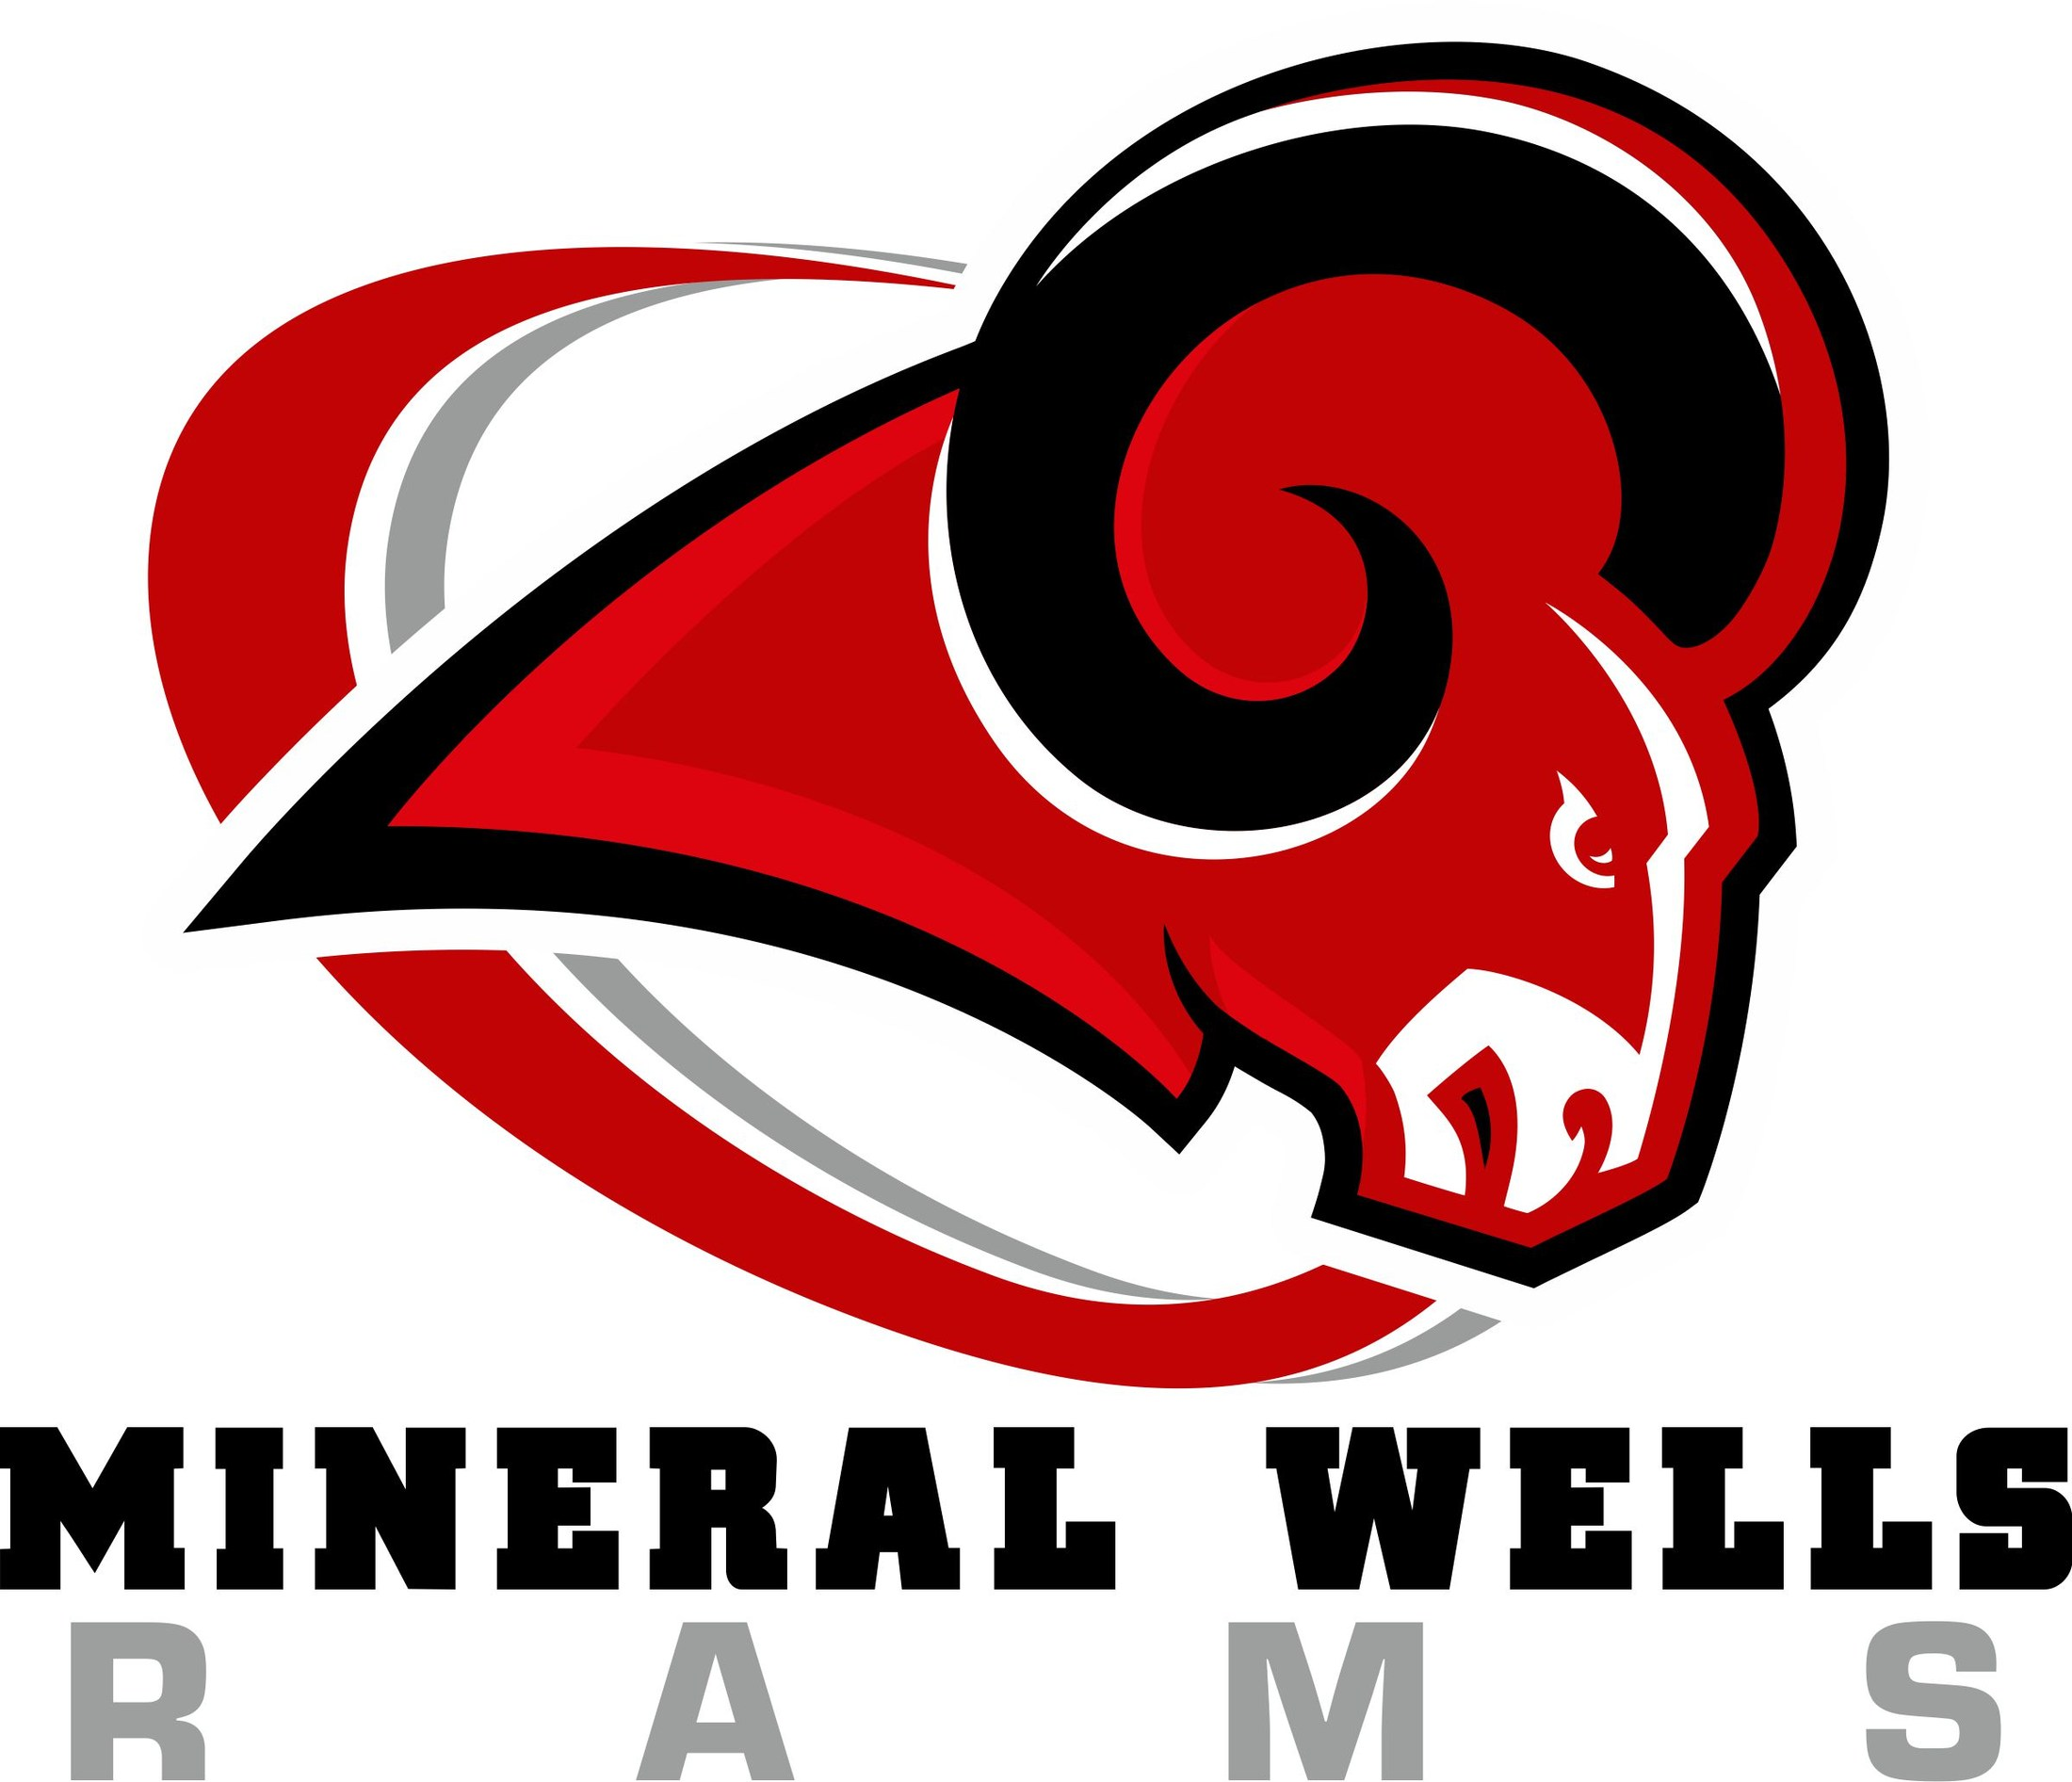 Red and Gray Ram with wording